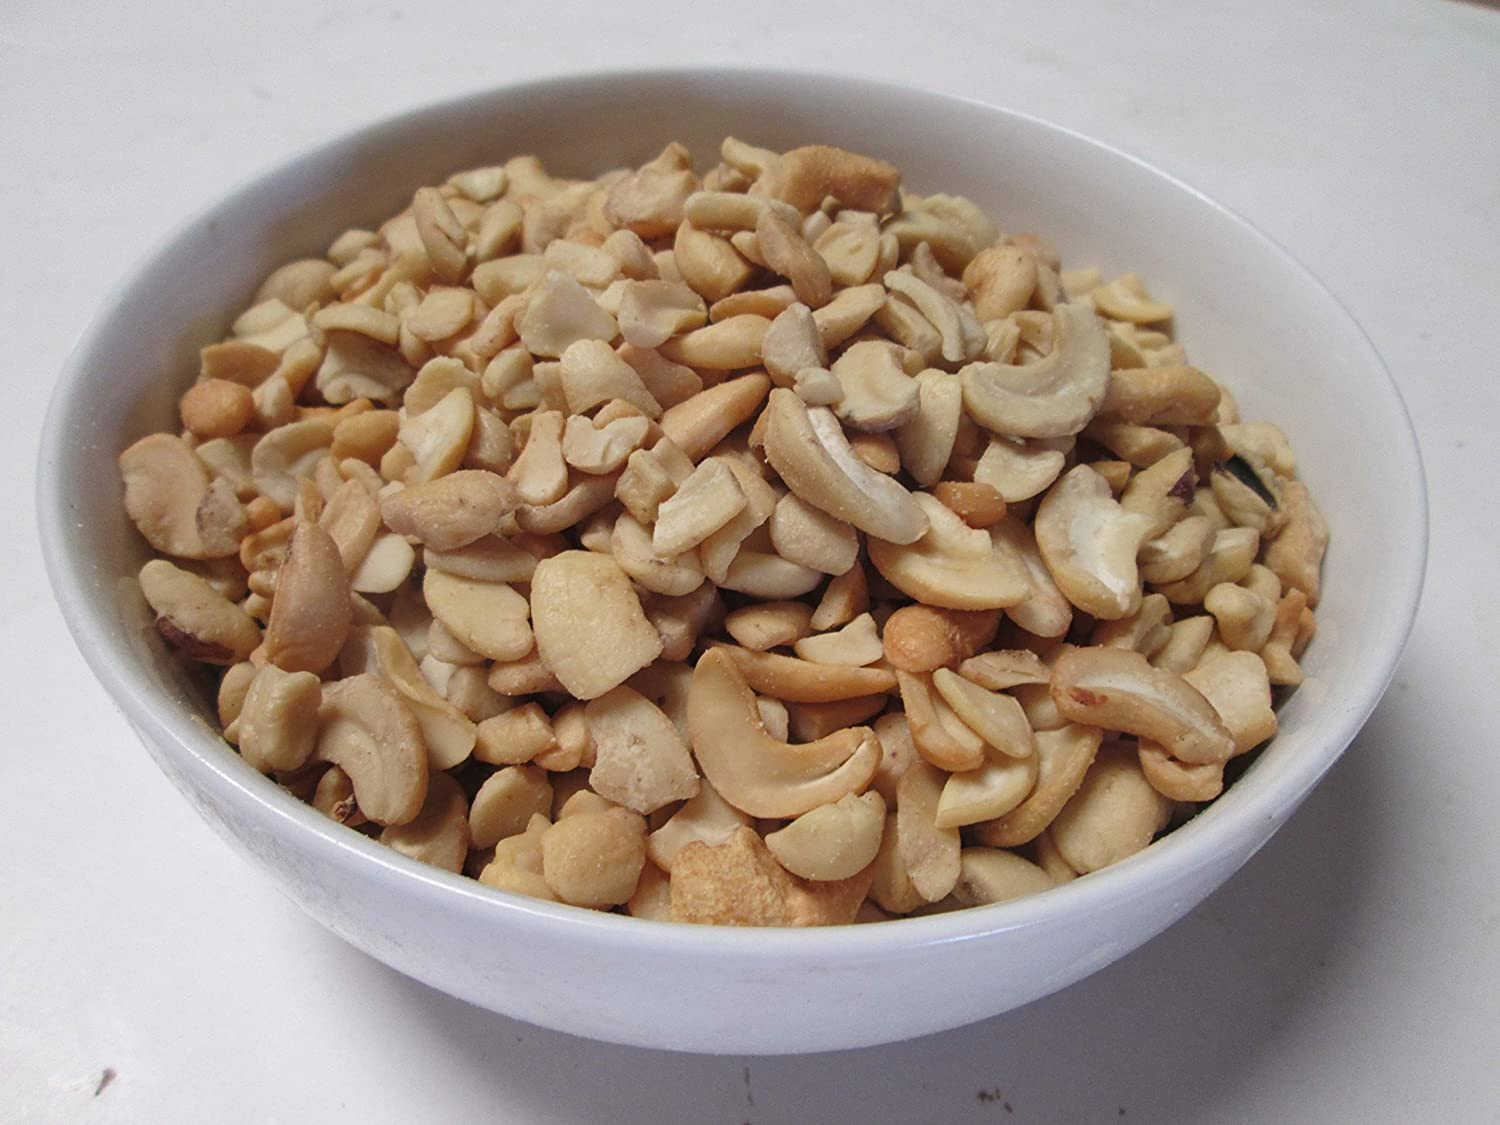 OFFicial store Roasted Cashew Pieces Limited price sale case 25 lbs